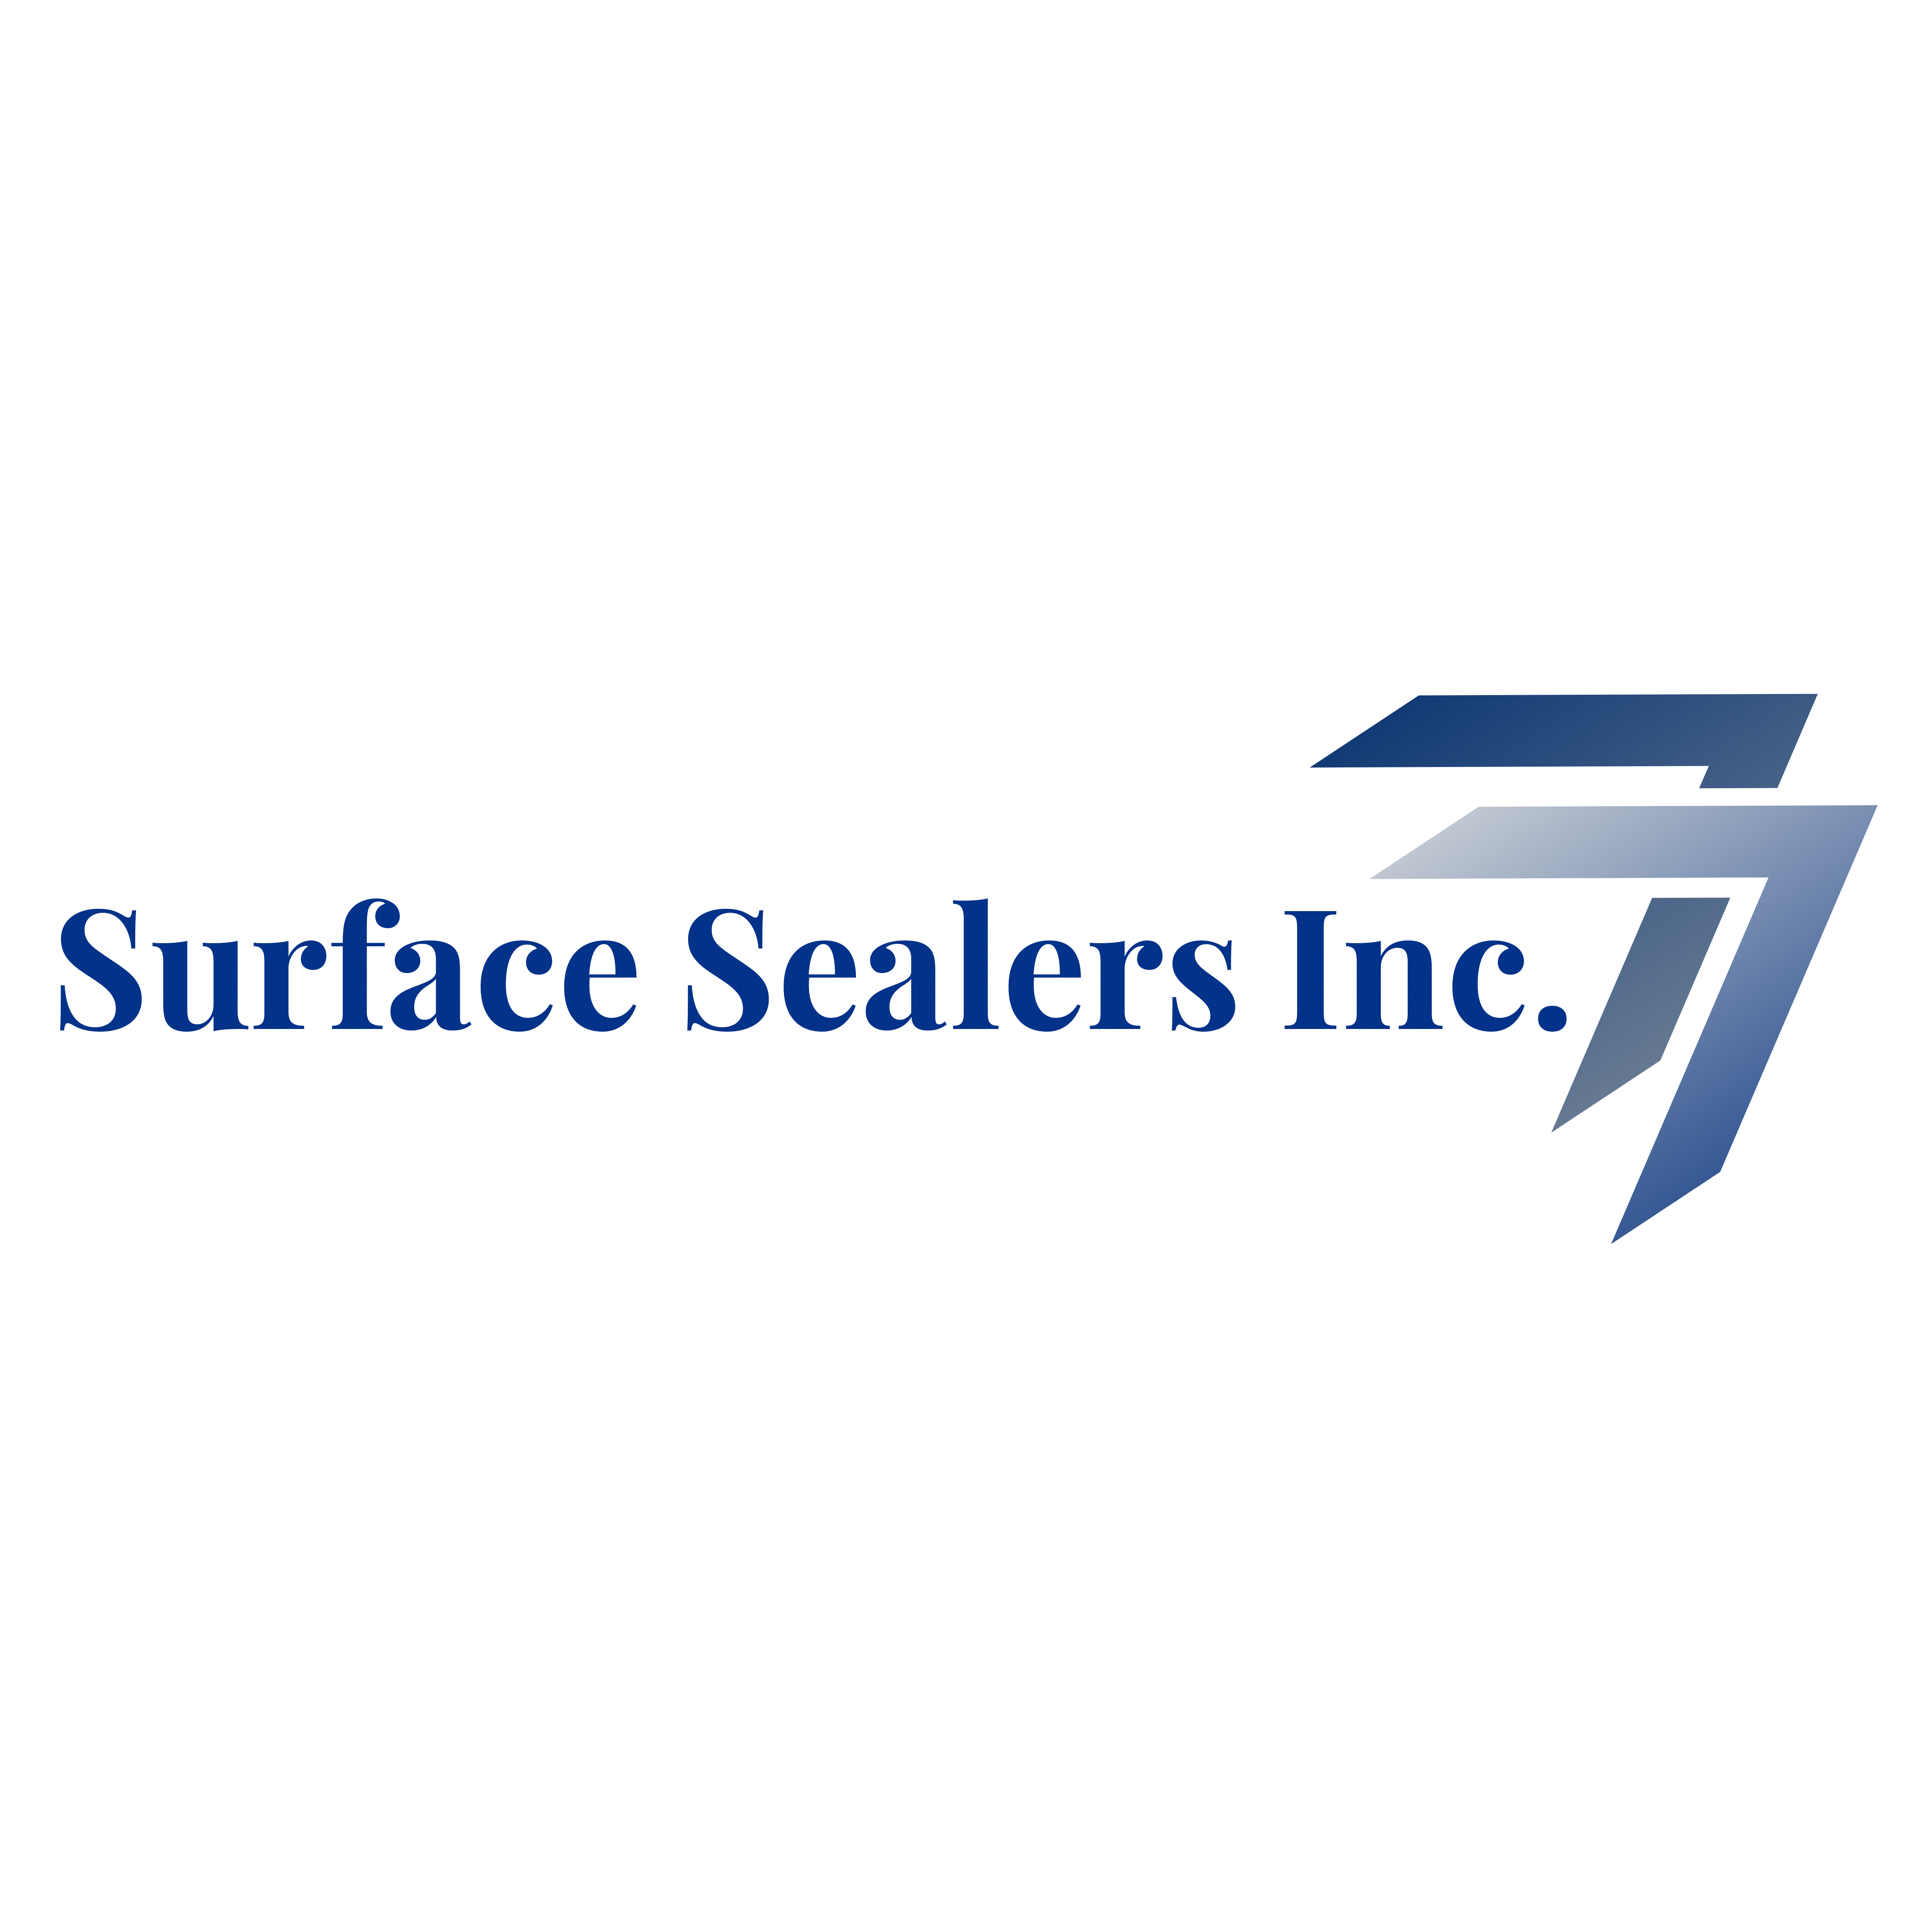 Surface Sealers Inc